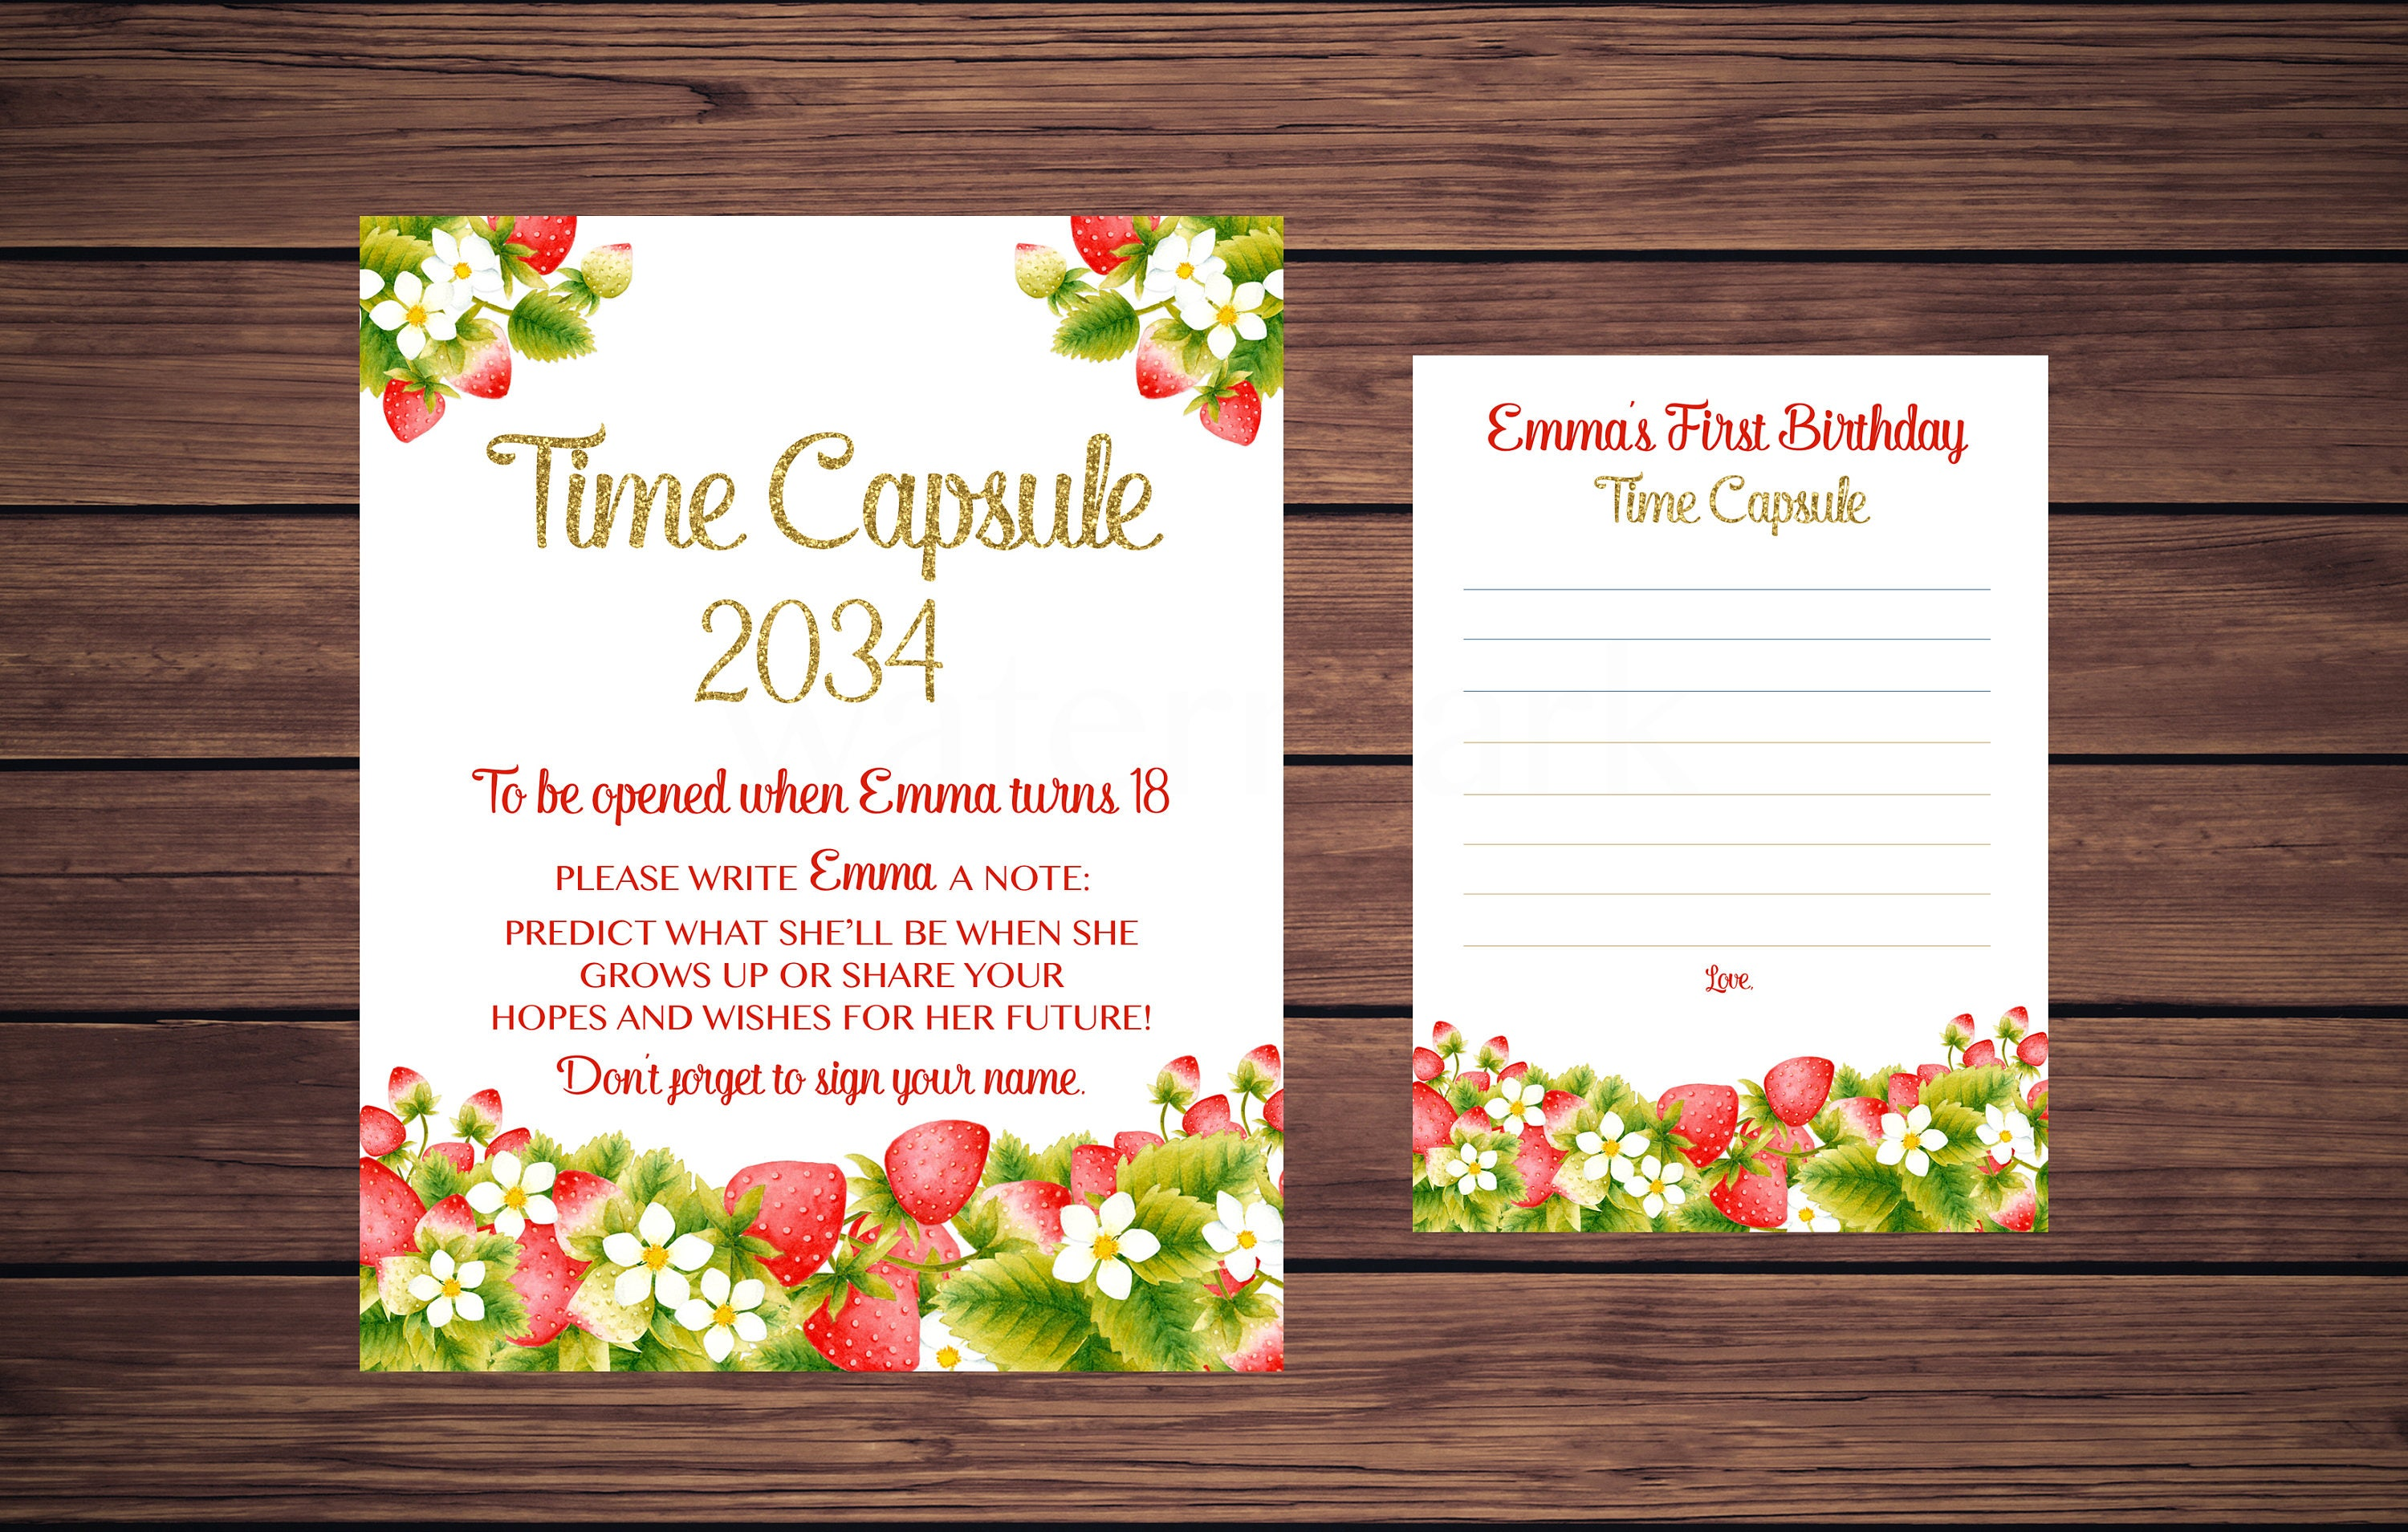 Strawberry Time Capsule Sign and Card First Birthday Time